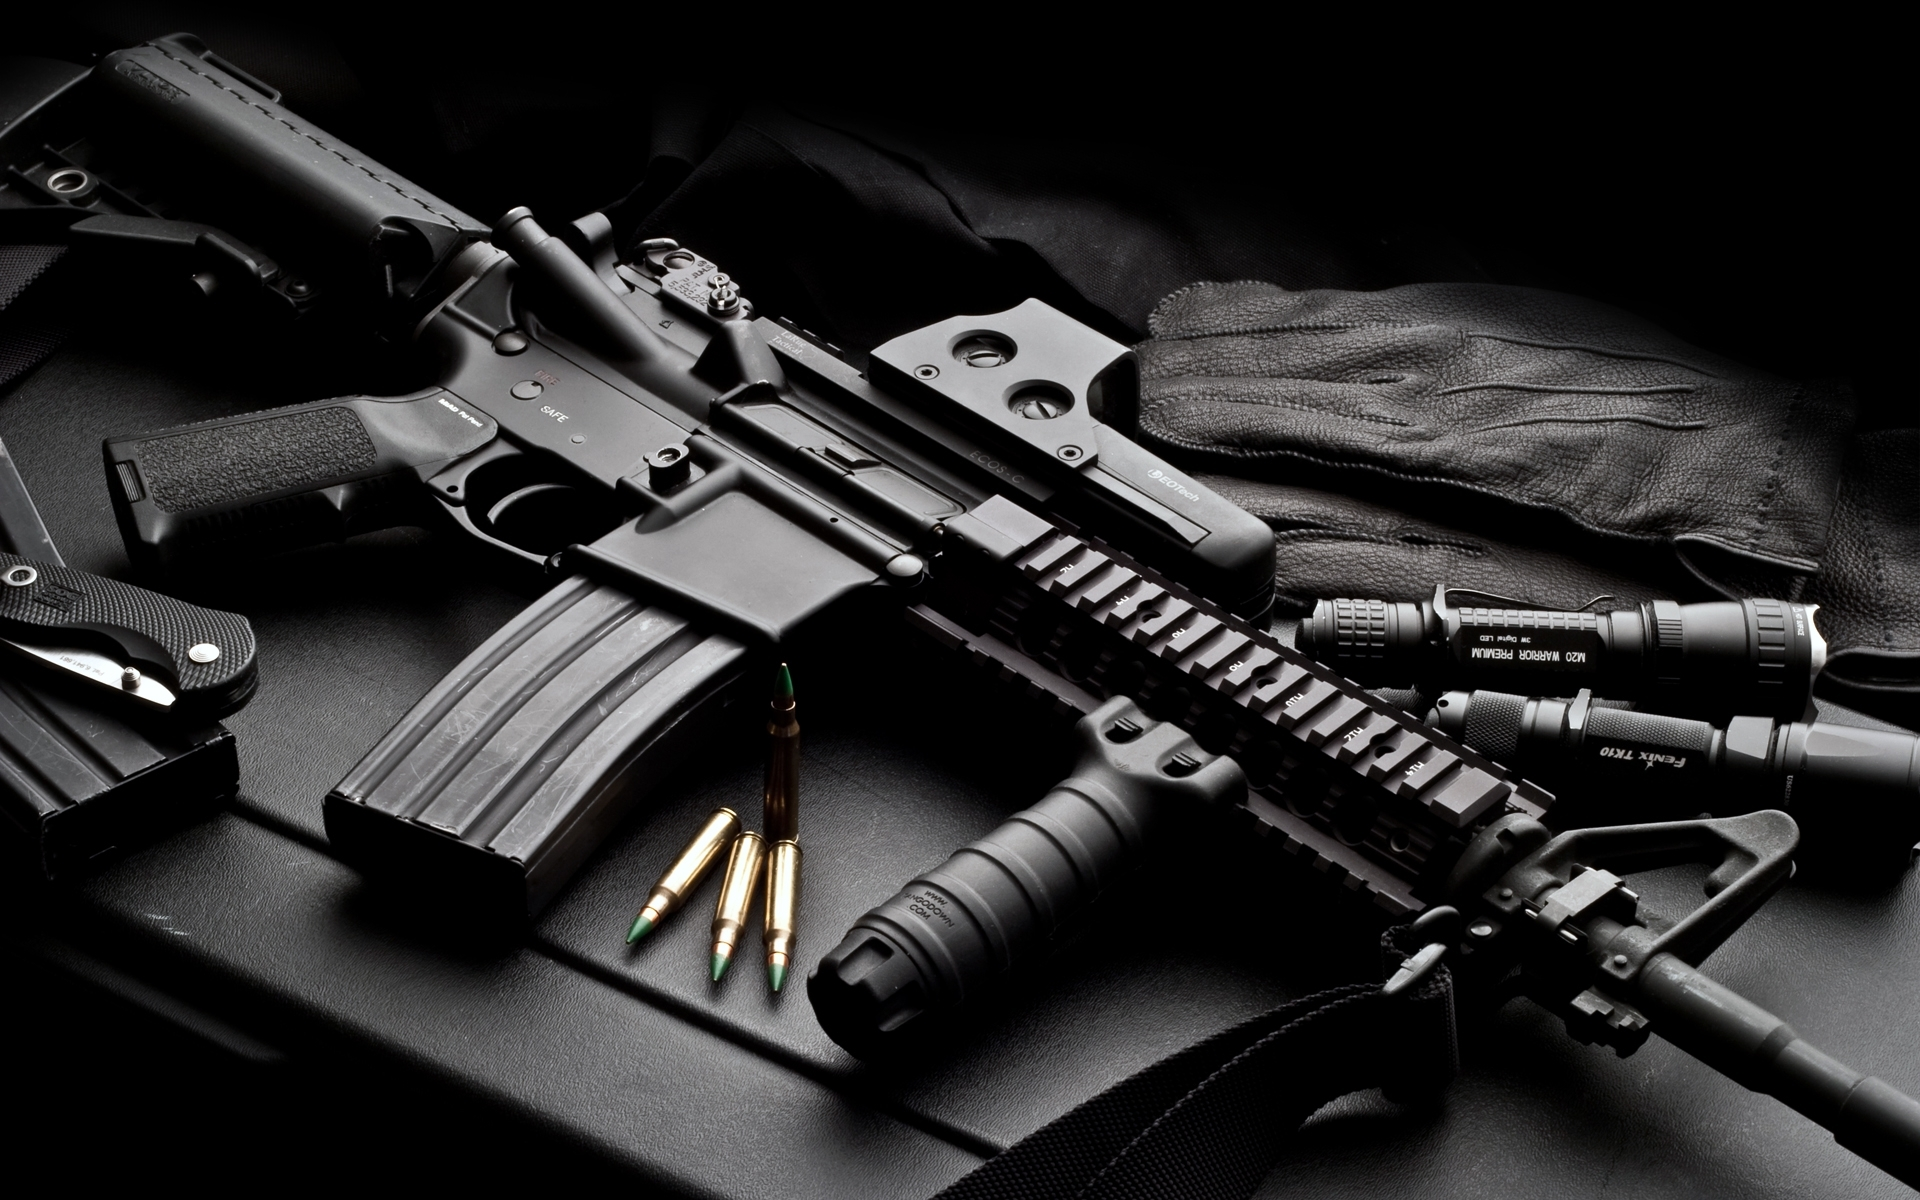 colt ar-15 full hd wallpaper and background image | 1920x1200 | id:96814